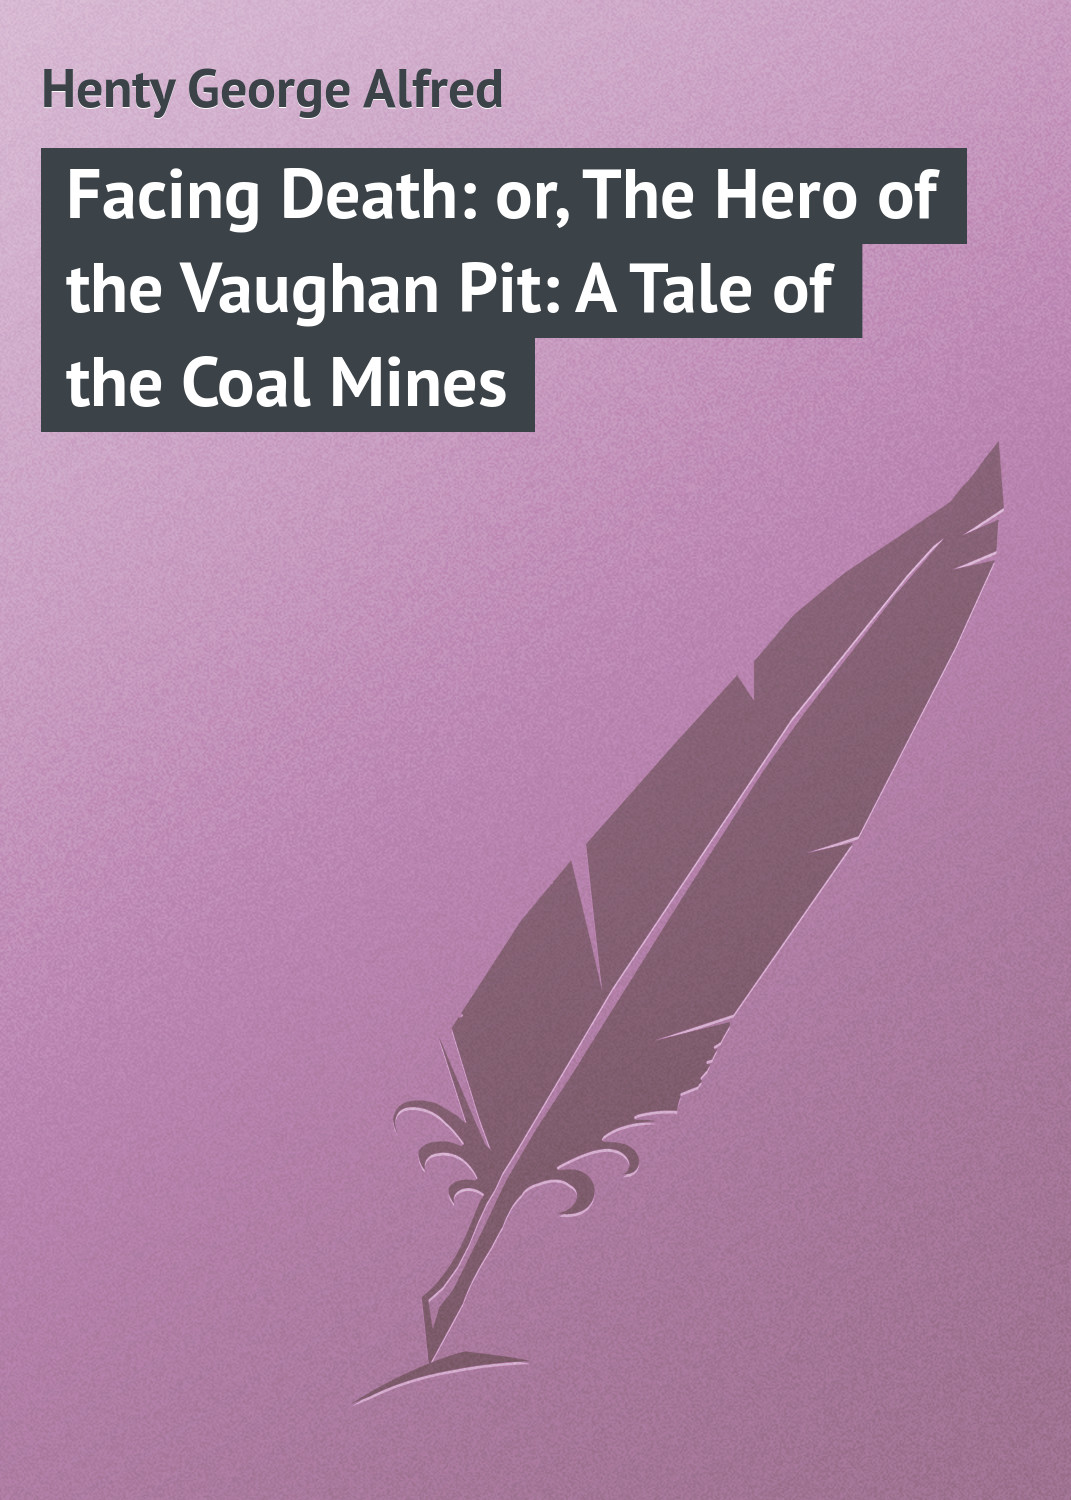 Henty George Alfred Facing Death: or, The Hero of the Vaughan Pit: A Tale of the Coal Mines